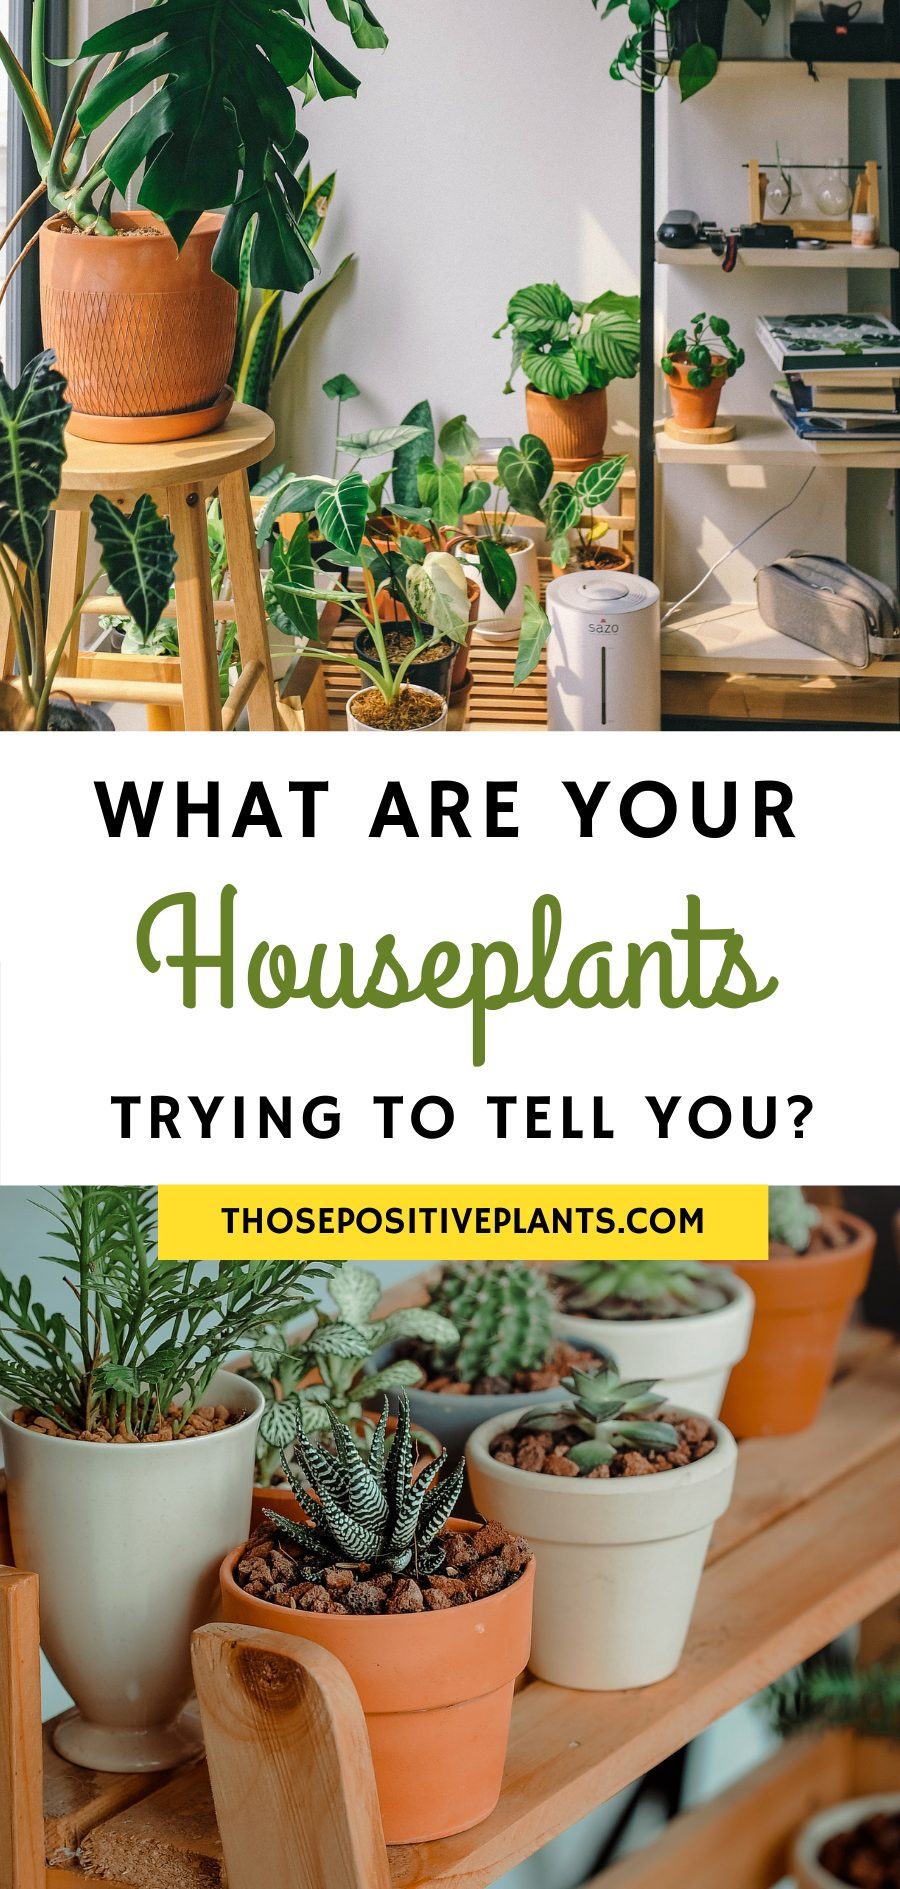 what are your houseplants trying to tell you